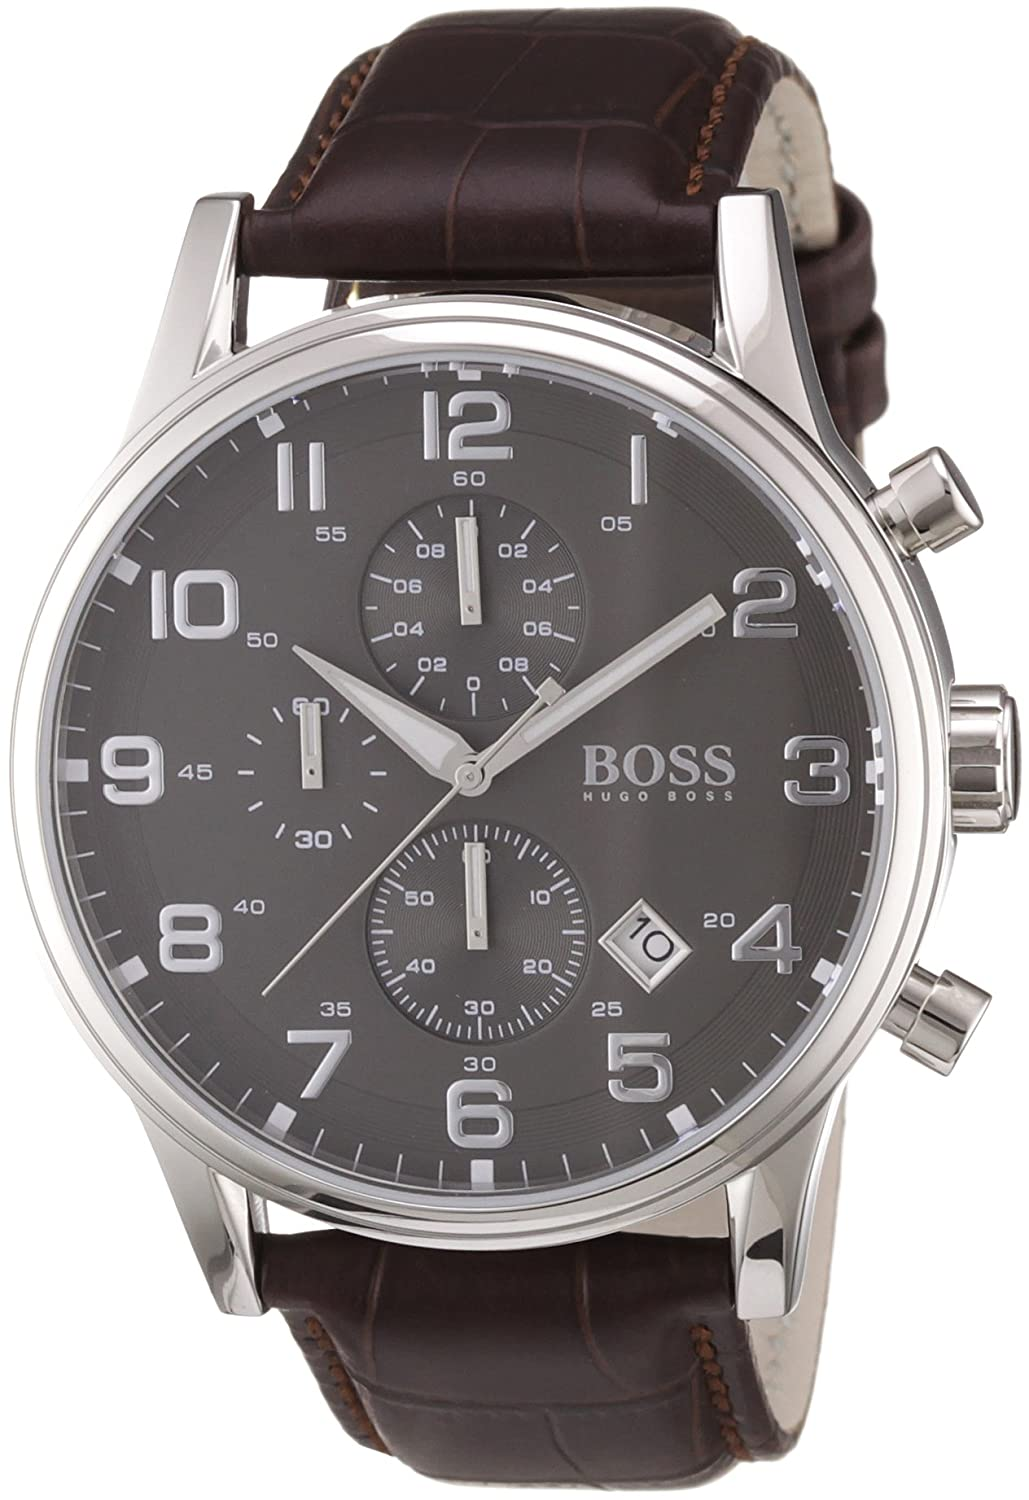 hugo boss mens quartz watch chronograph display and leather strap hugo boss mens quartz watch chronograph display and leather strap 1512570 hugo boss amazon co uk watches